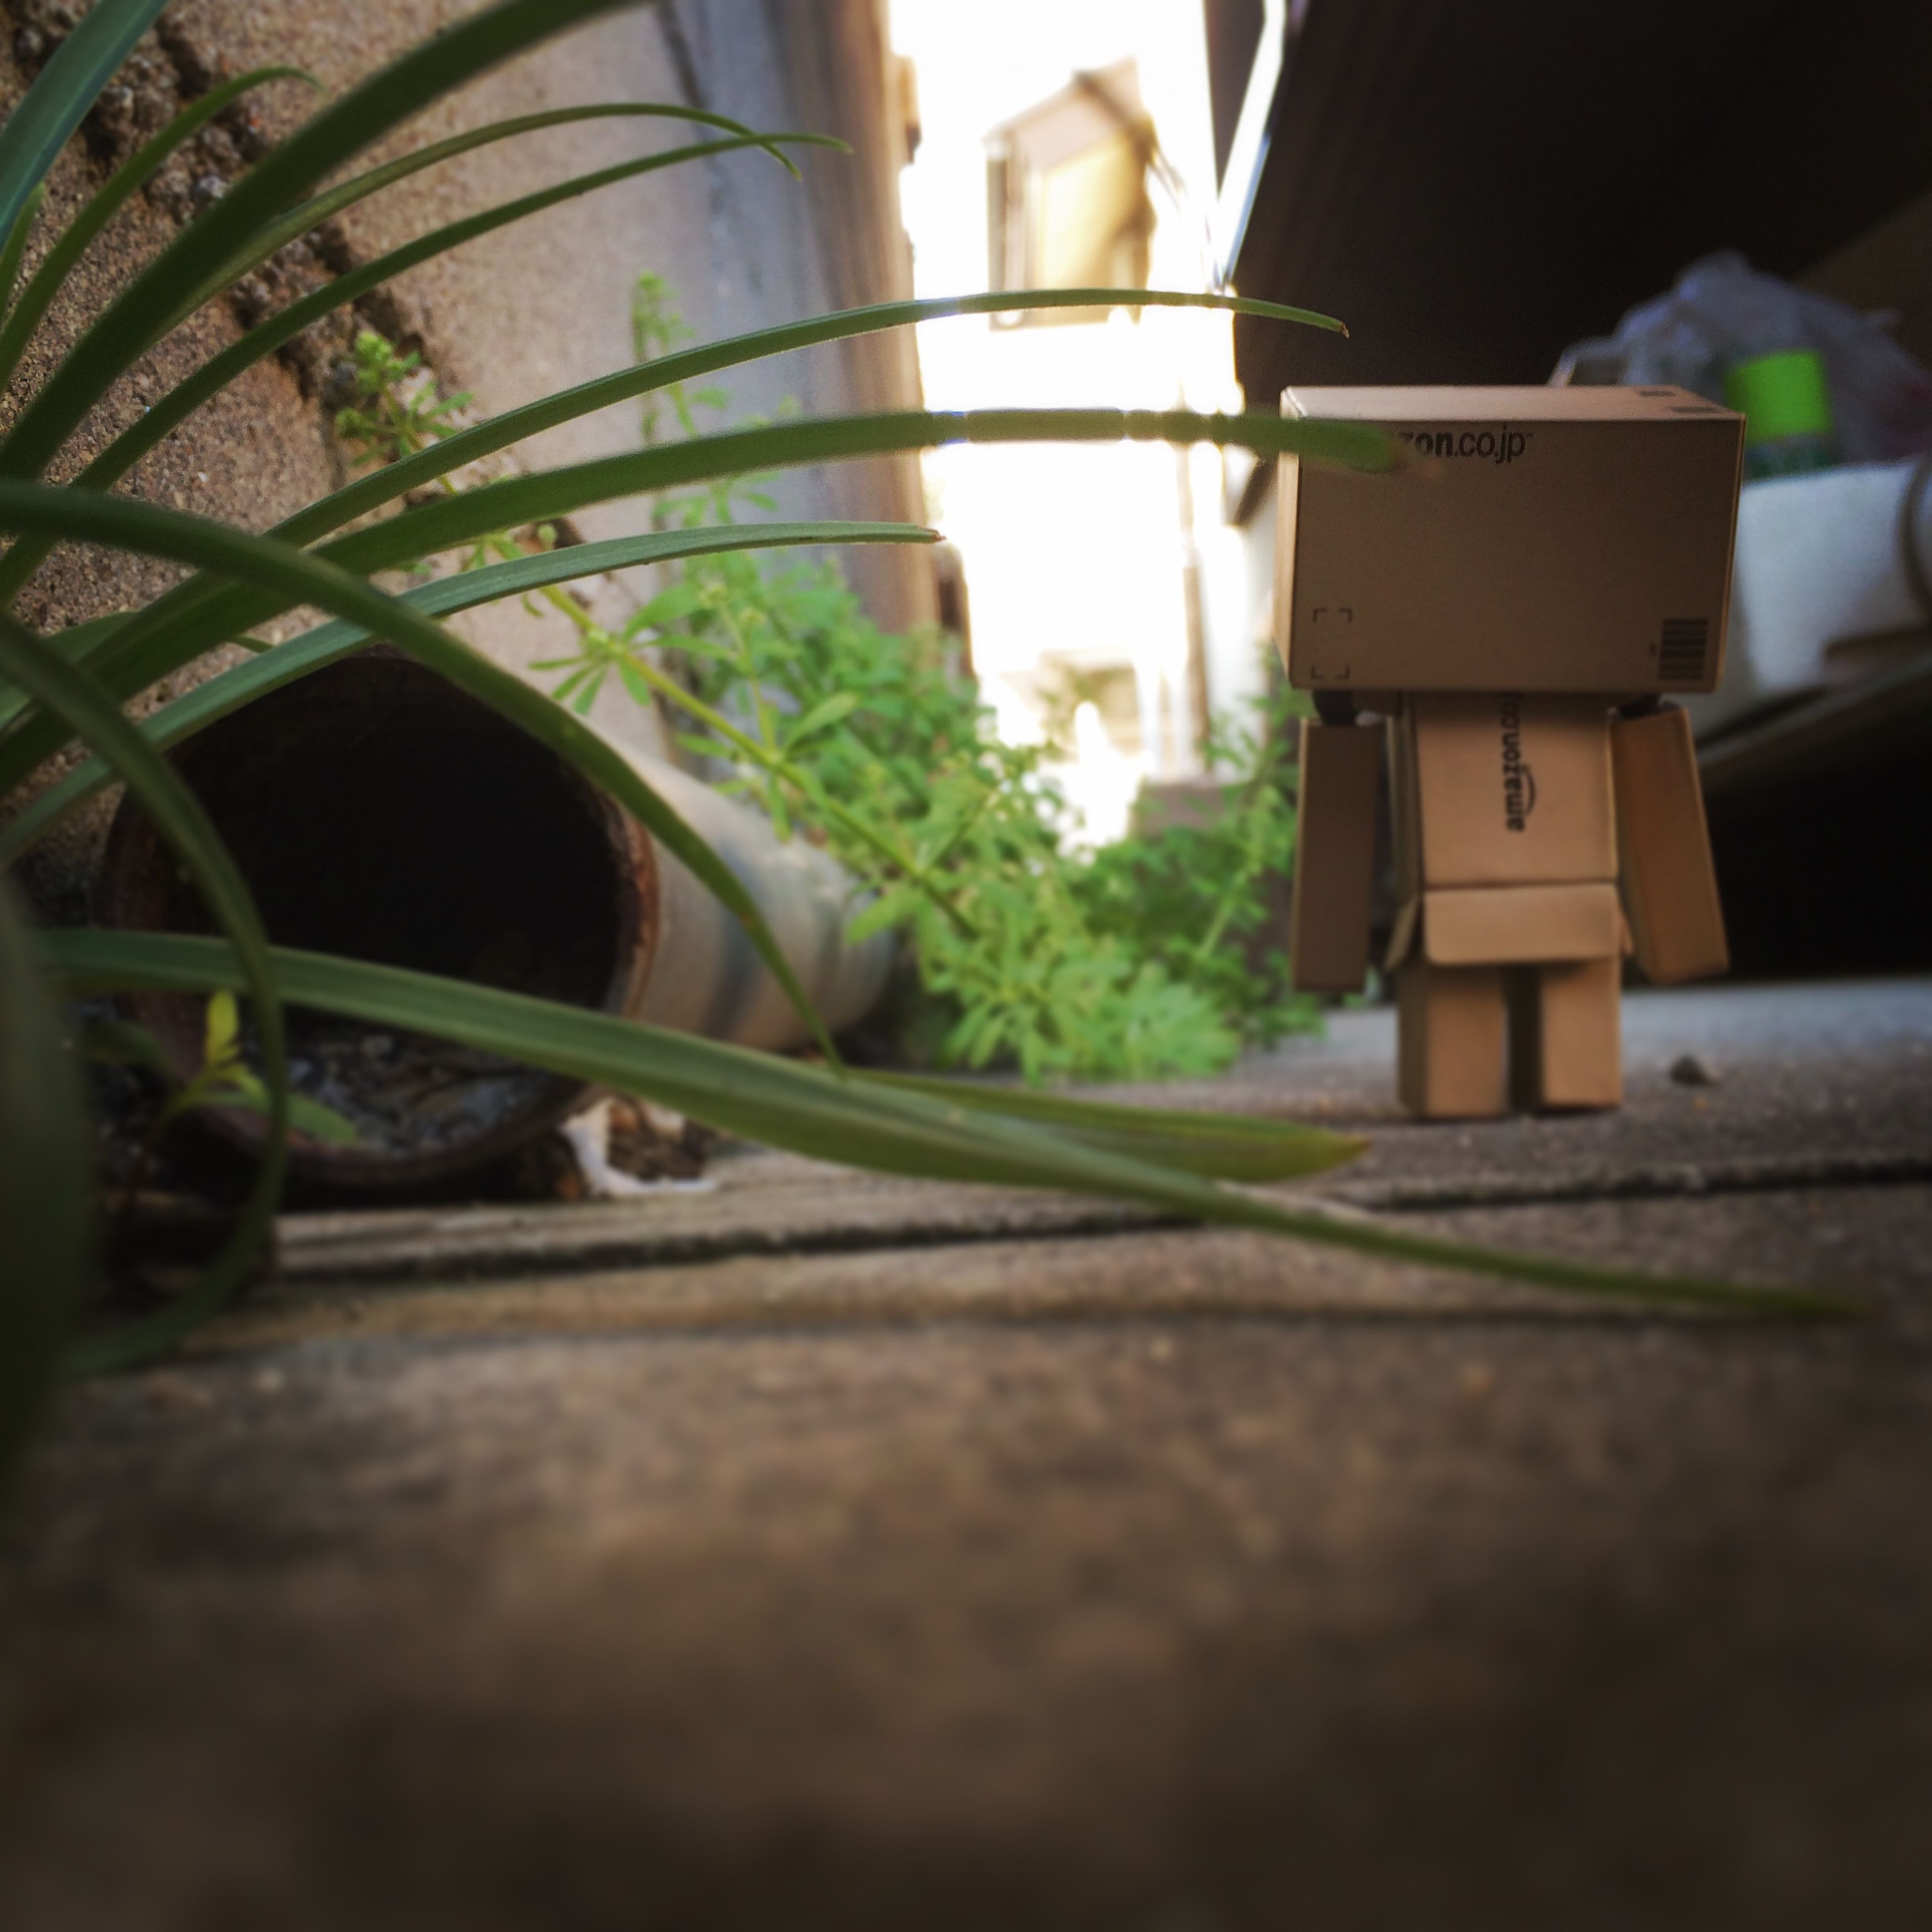 selective focus, surface level, potted plant, sunlight, plant, street, close-up, no people, shadow, built structure, leaf, growth, focus on foreground, outdoors, focus on background, day, green color, building exterior, nature